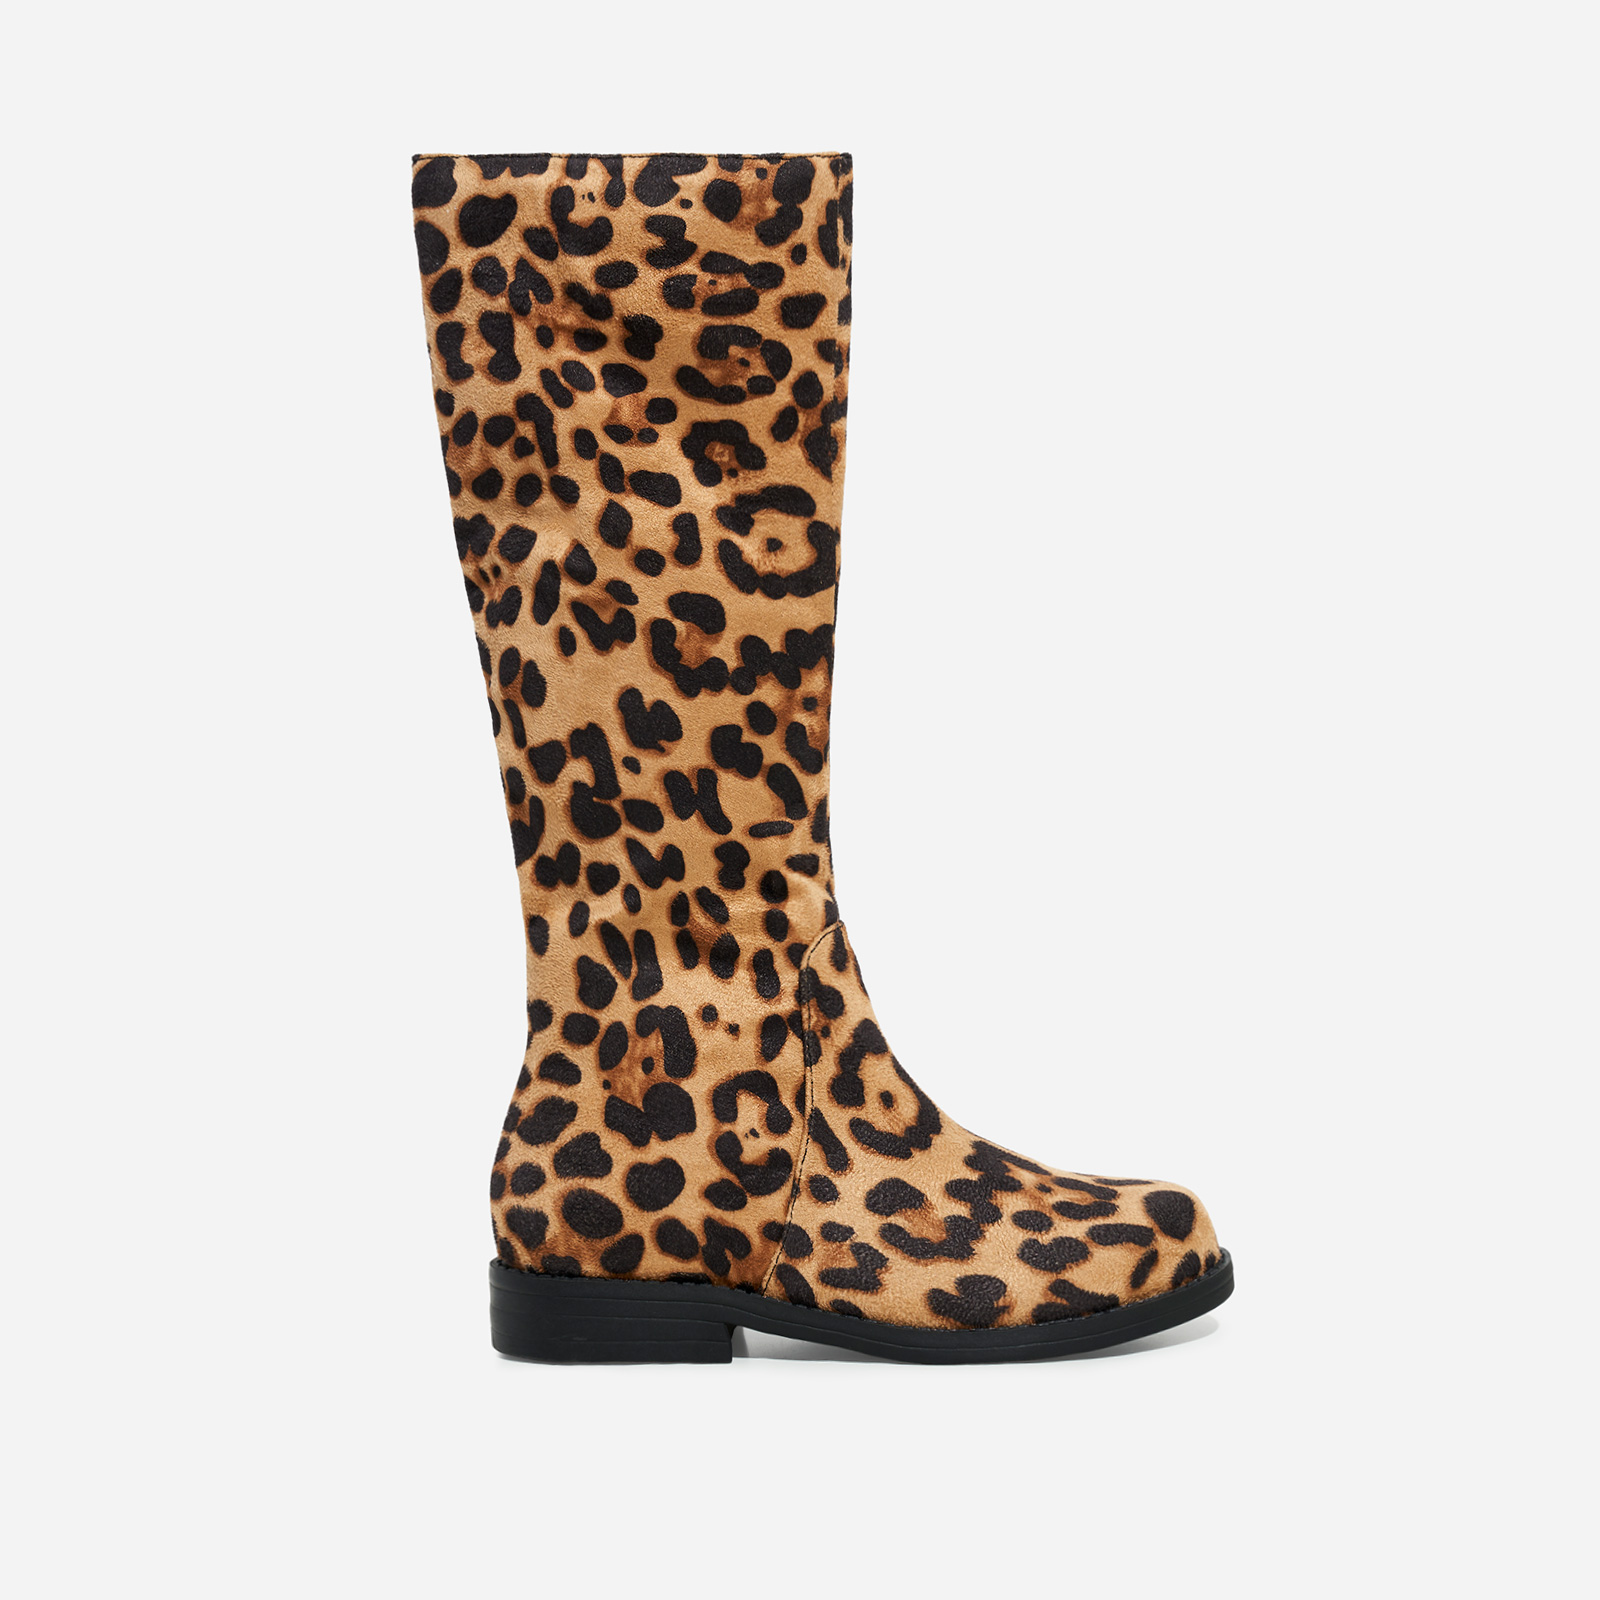 Animal Girl's Knee High Long Boot In Tan Leopard Print Faux Suede